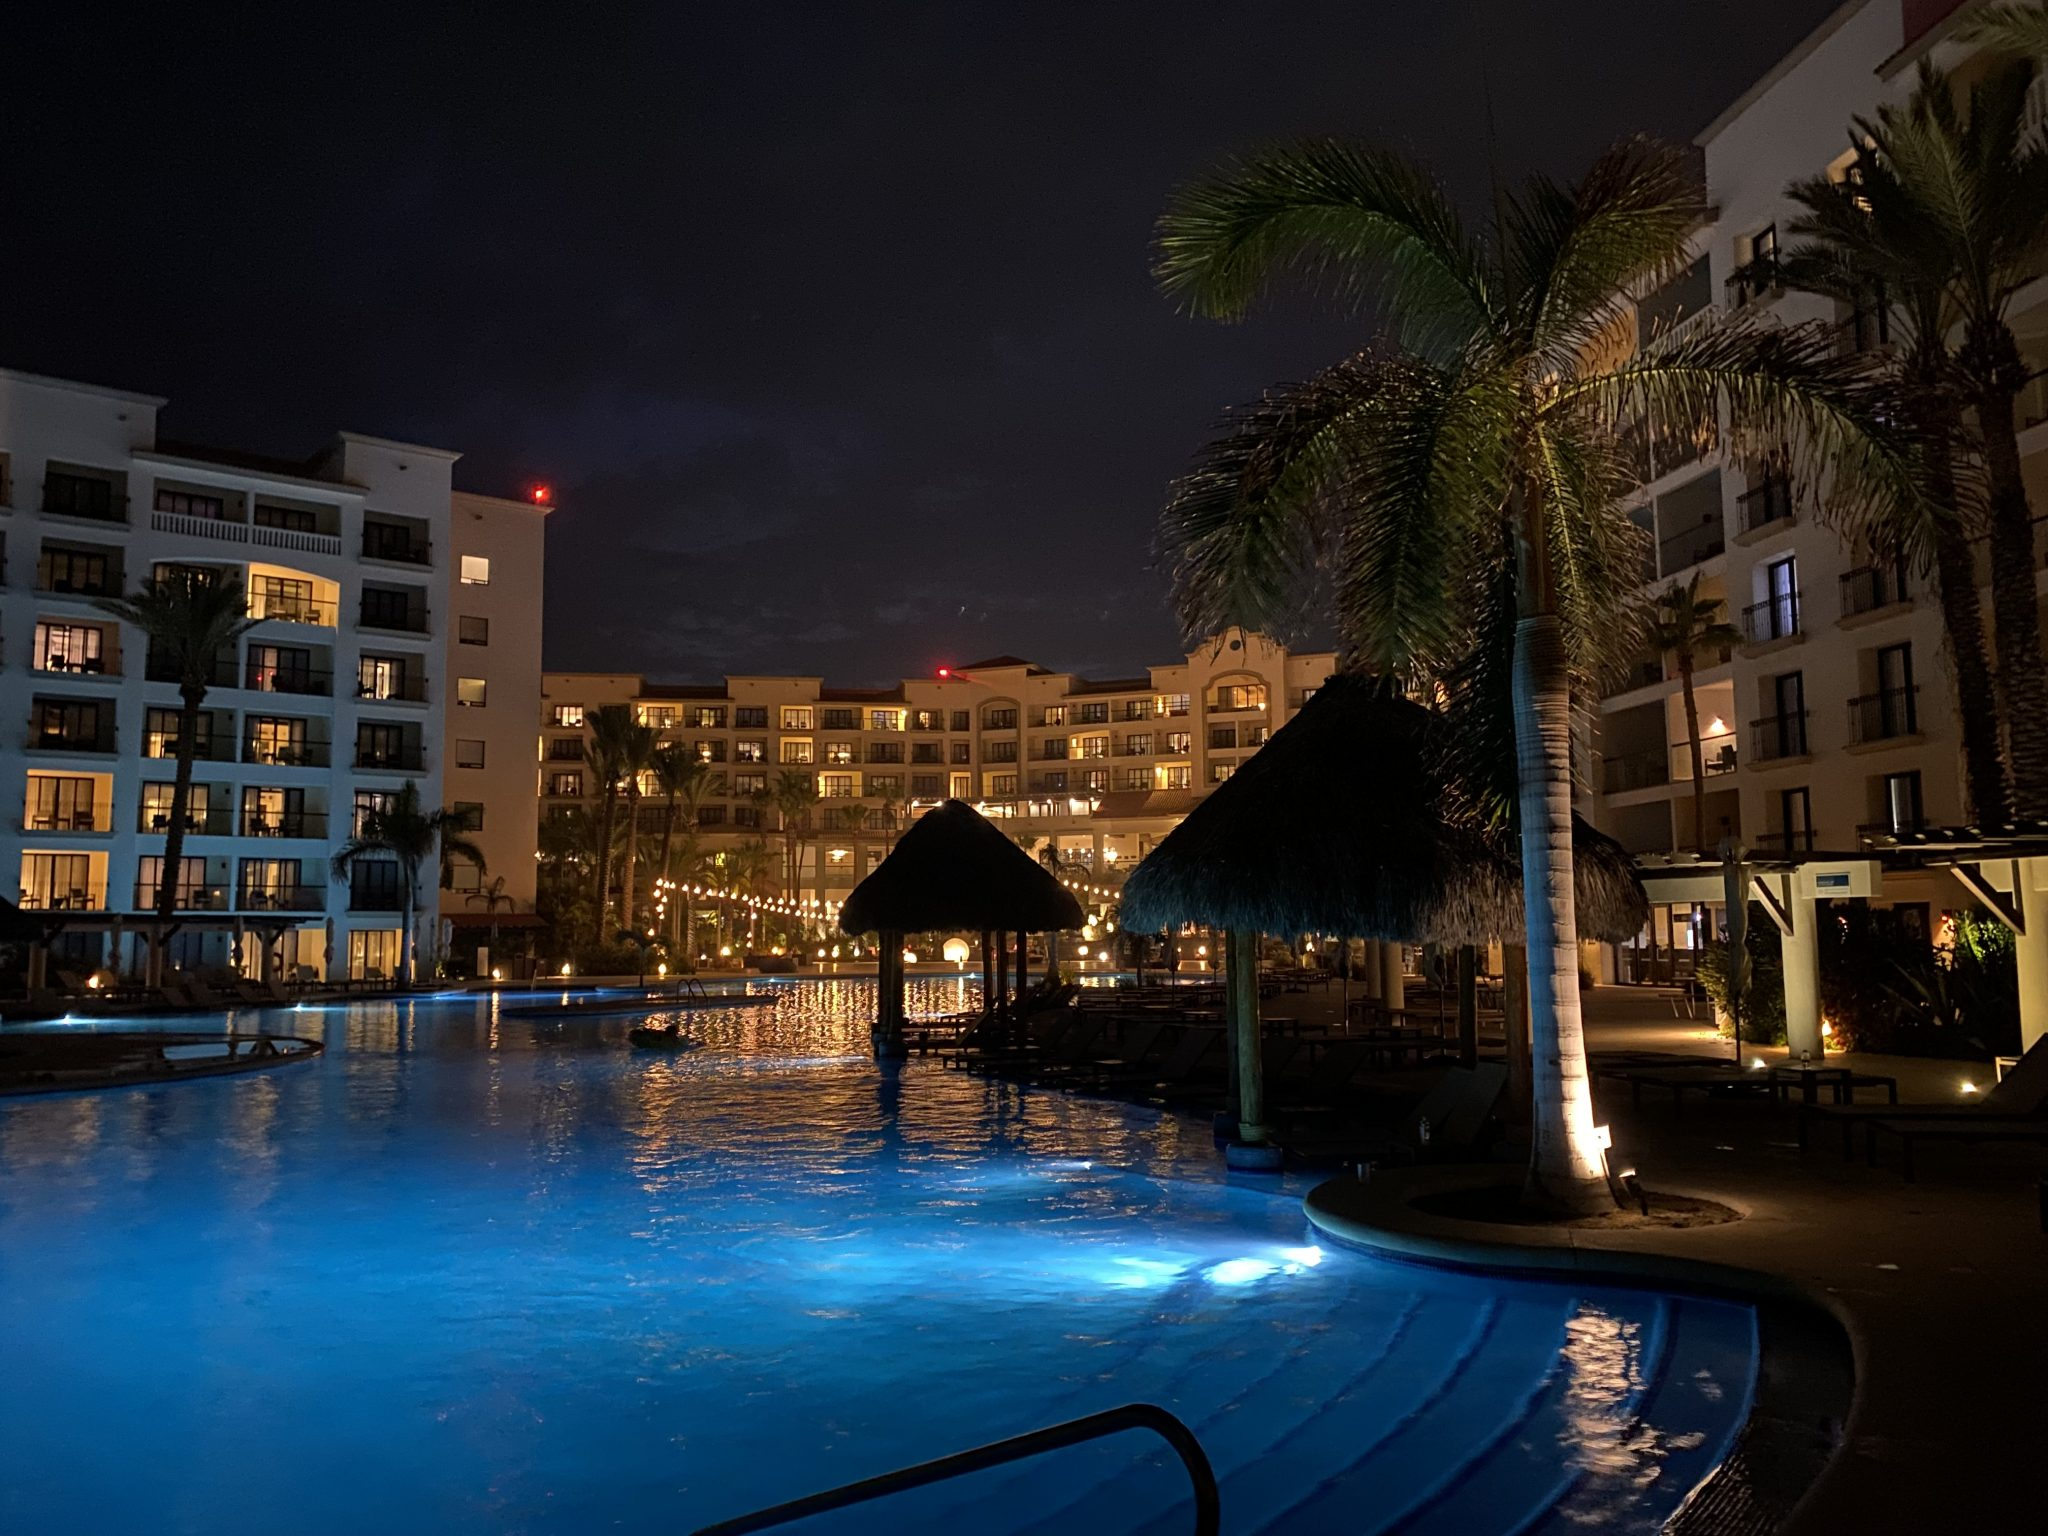 Night shot taken from main pool looking back at lobby building and rooms at Hyatt Riva Resort in Los Cabos, Mexico